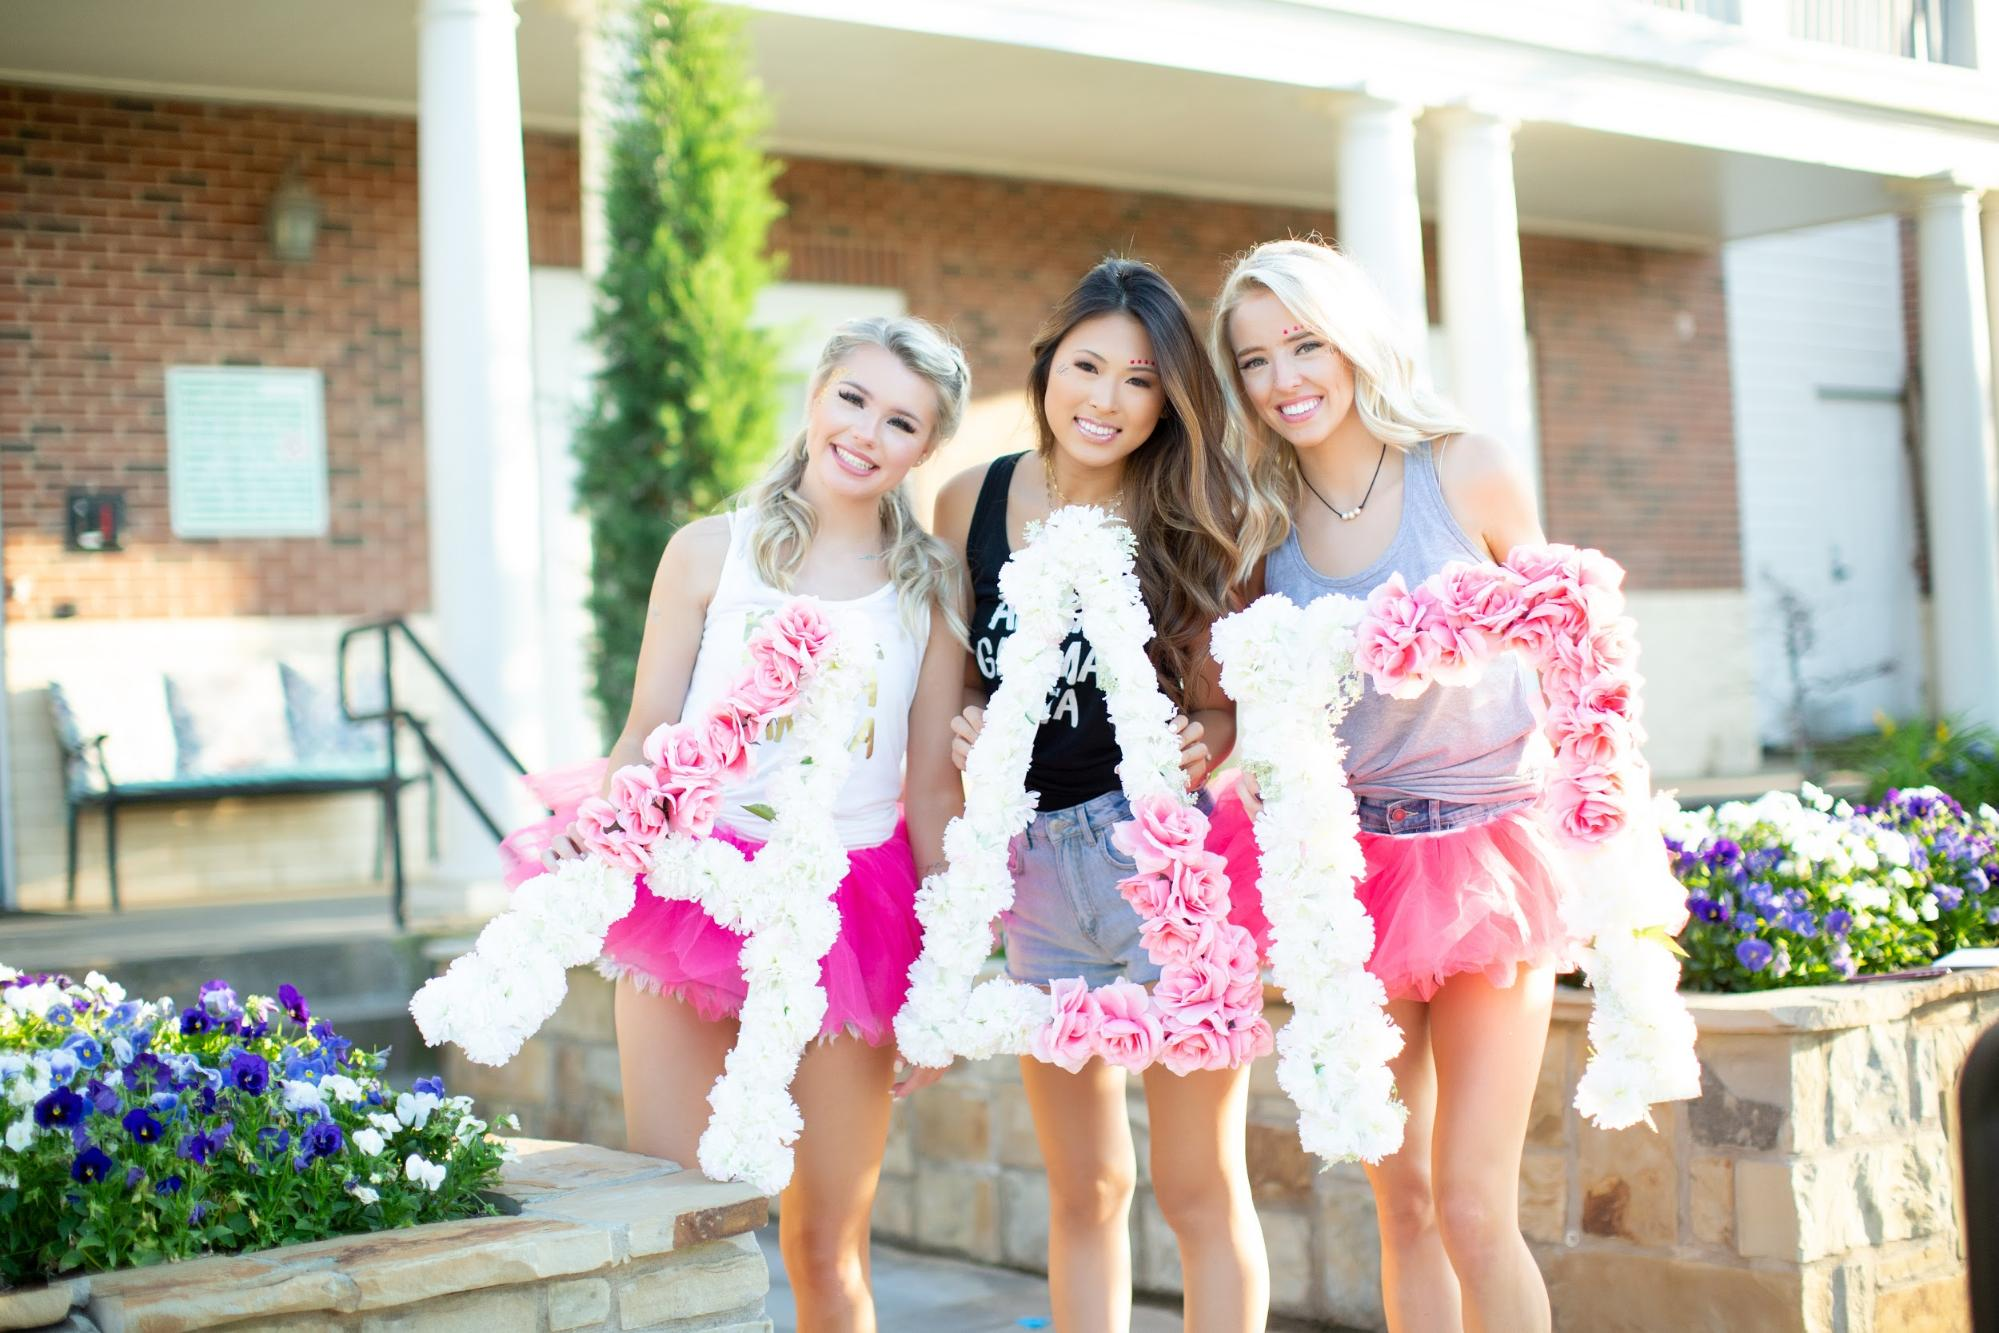 Sorority sisters holding up large floral greek letters